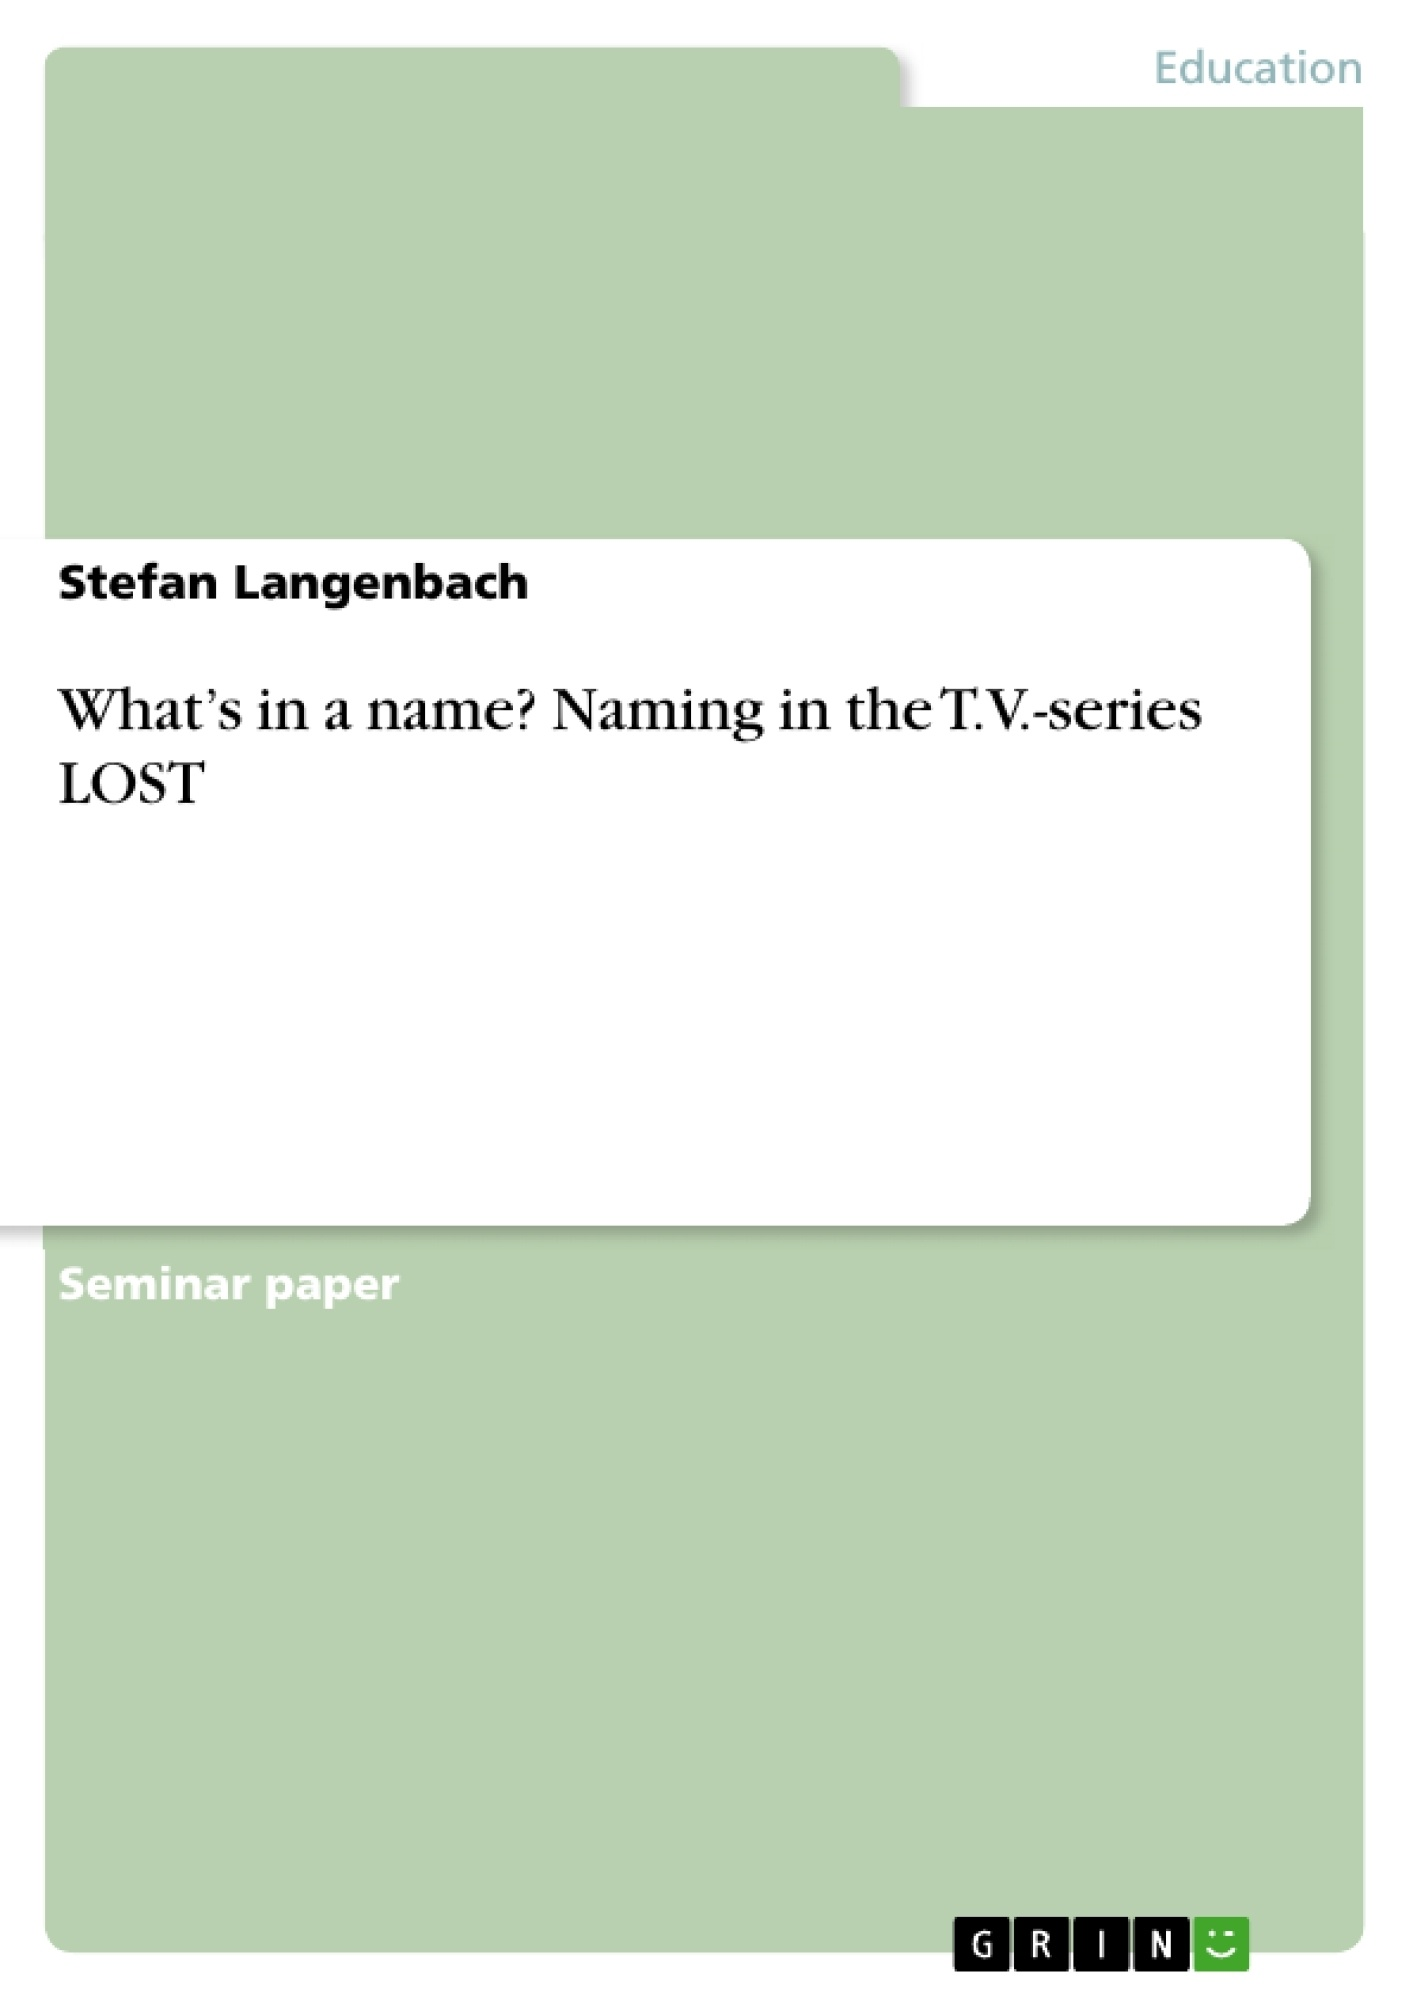 Title: What's in a name? Naming in the T.V.-series LOST